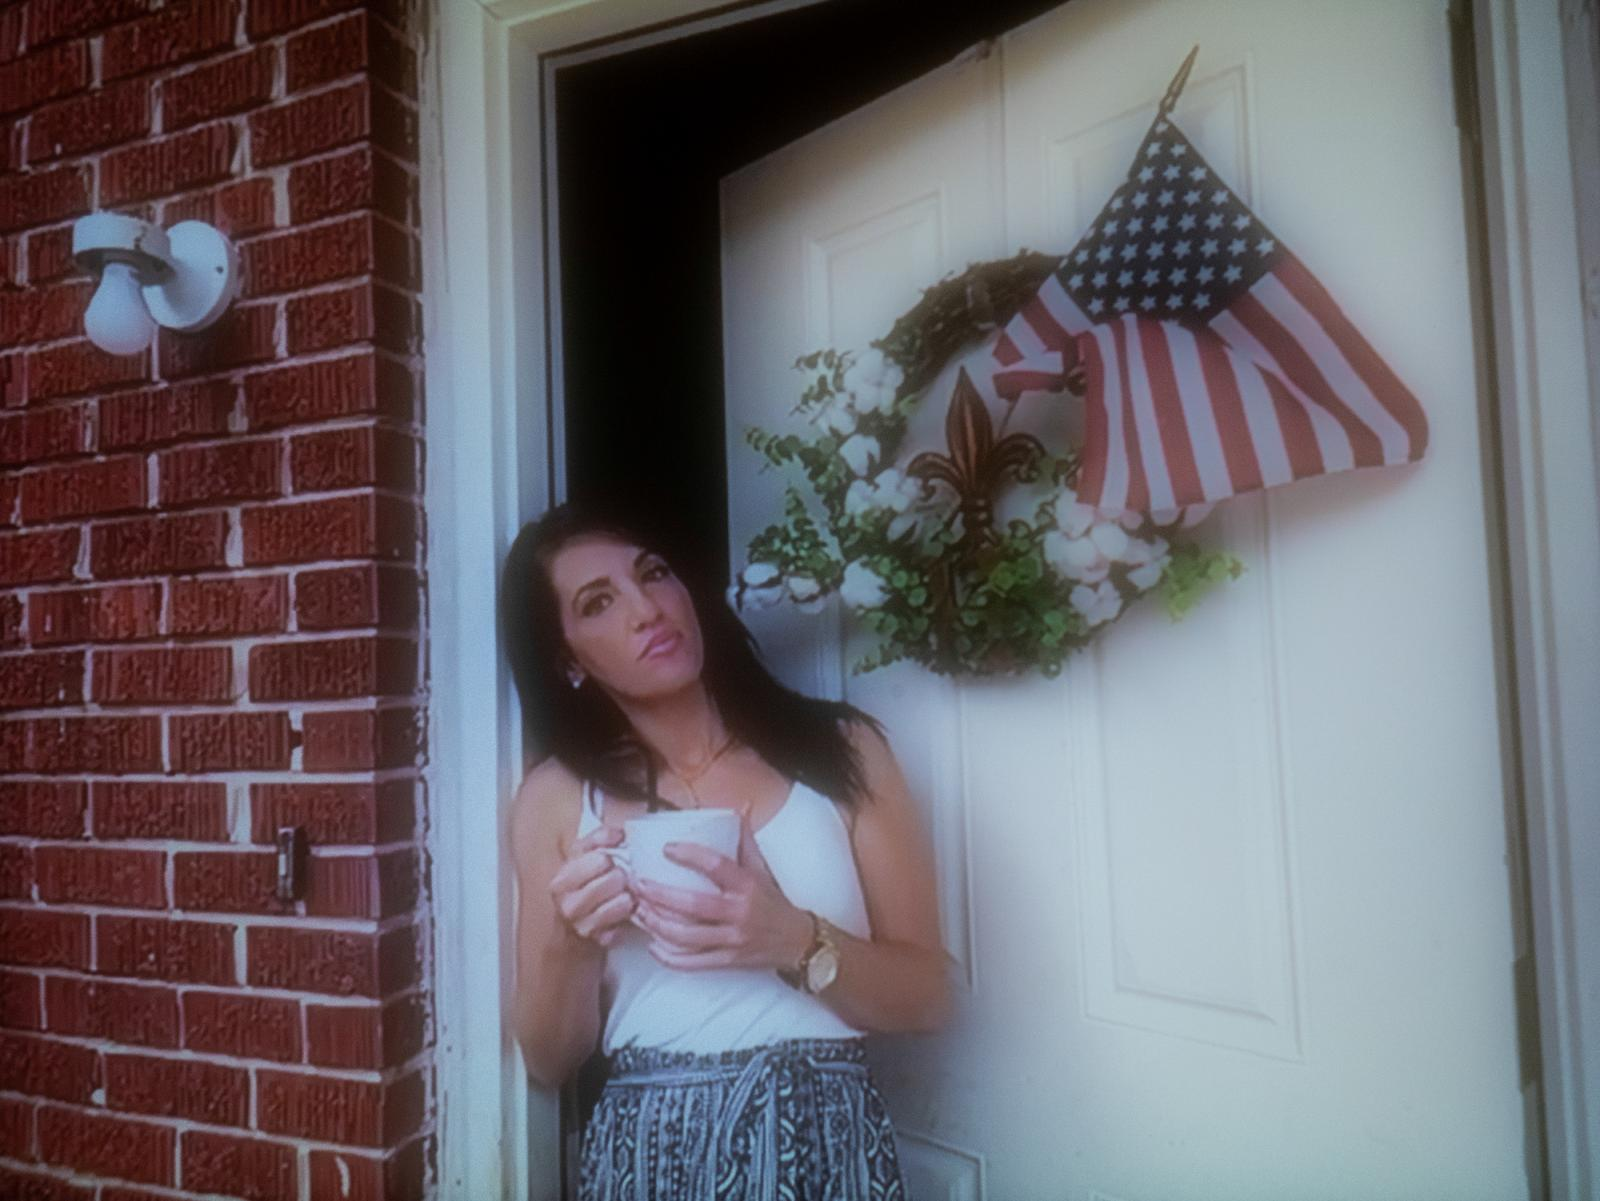 Nicole Hingle at her home in Chalmette, Louisiana. Hingle's son, J.H., 18, is incarcerated at Florida Parishes Juvenile Detention Center in Covington. (Portrait taken remotely by Michele Abercrombie / News21)